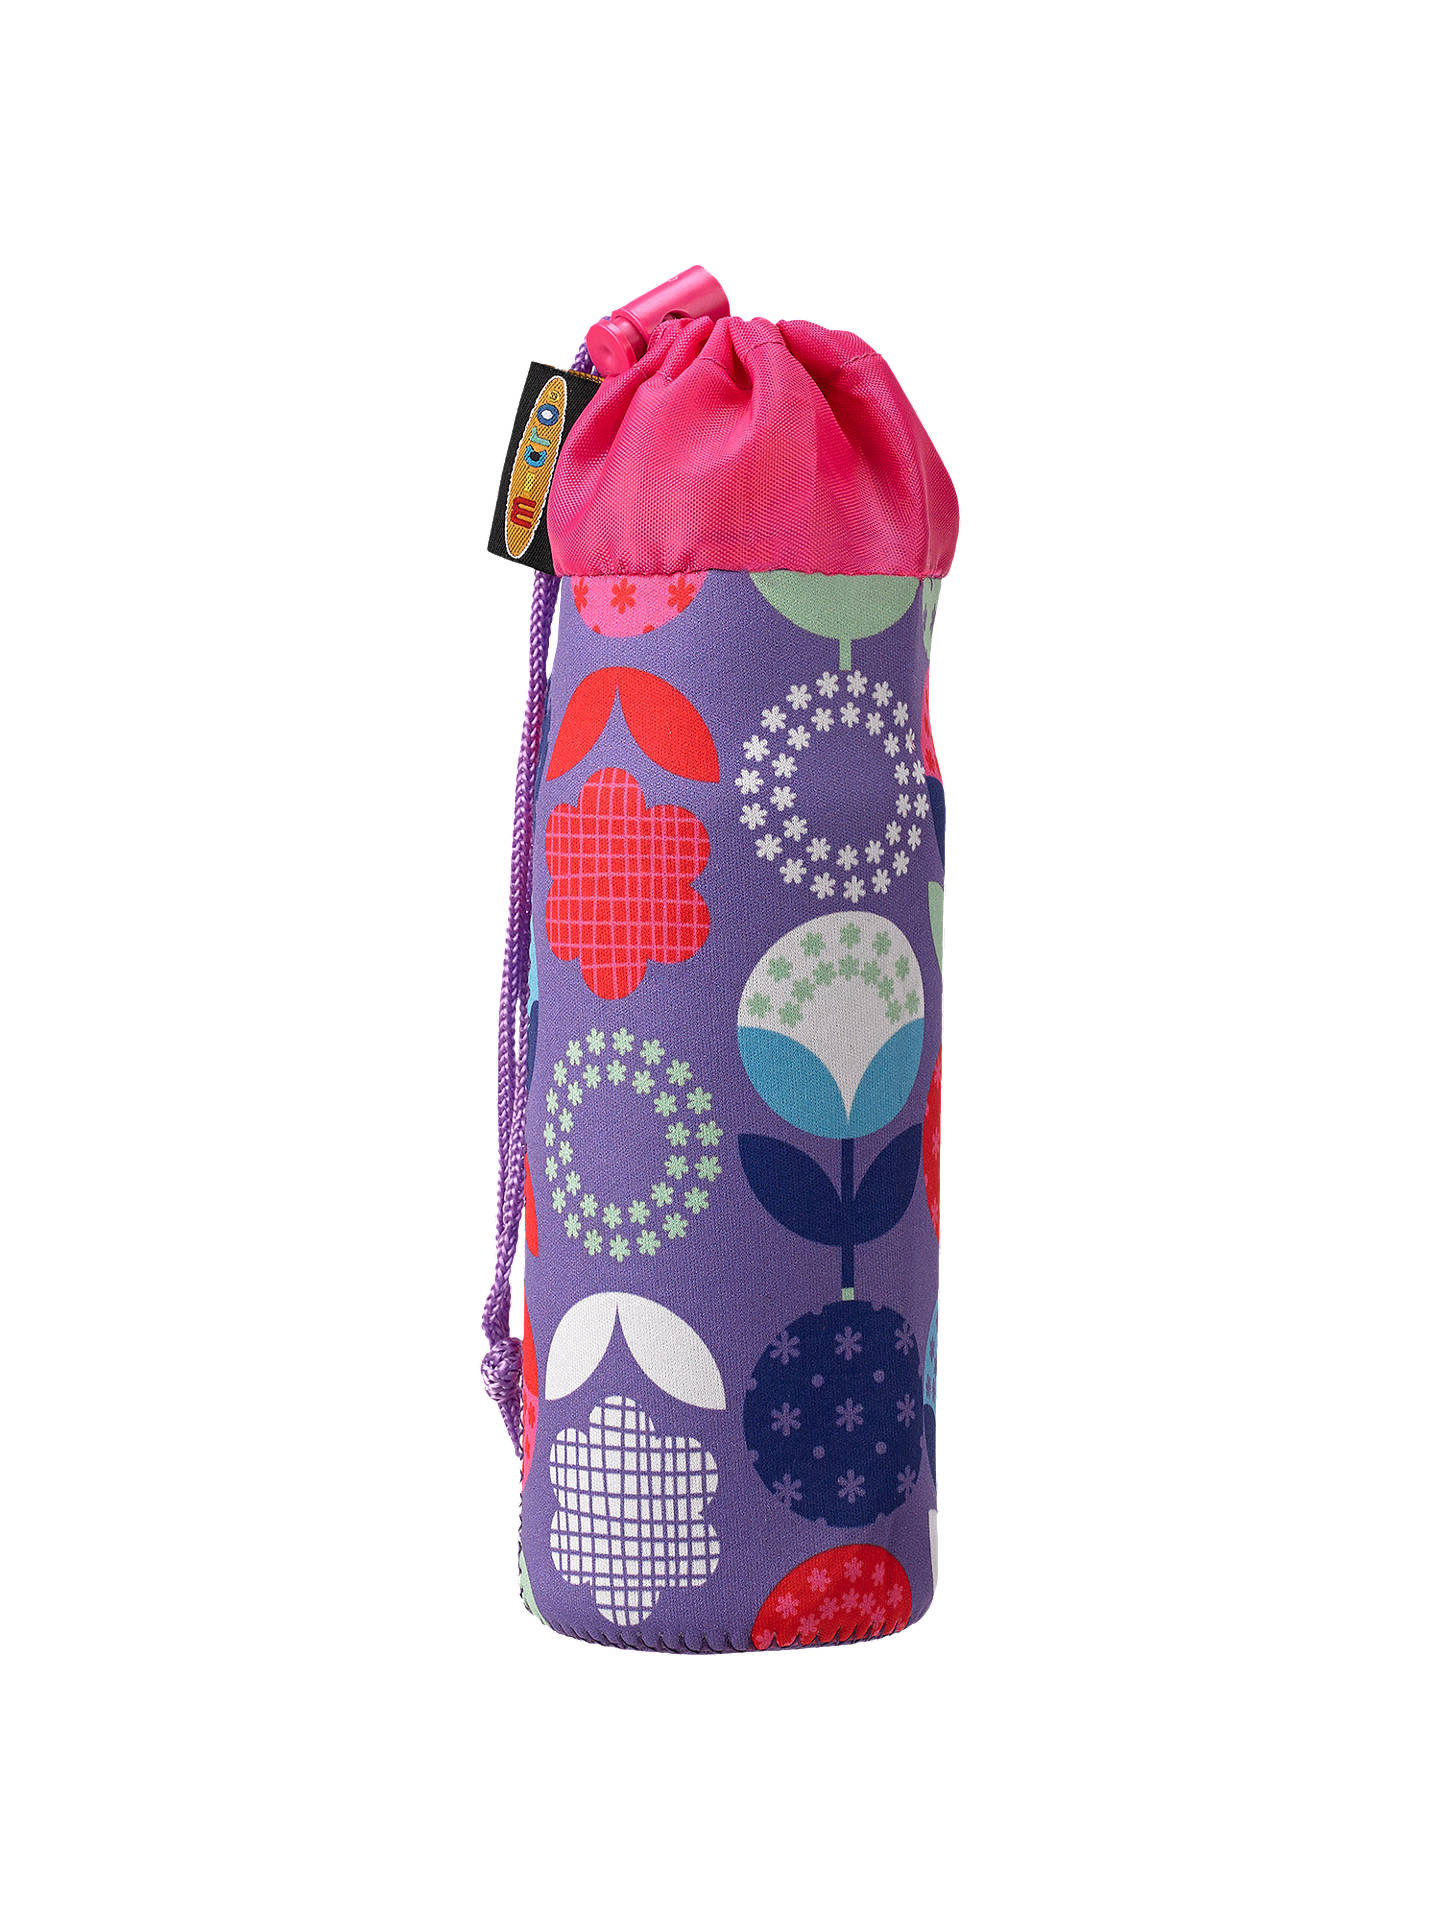 BuyMicro Scooter Bottle Holder, Floral Dot Online at johnlewis.com